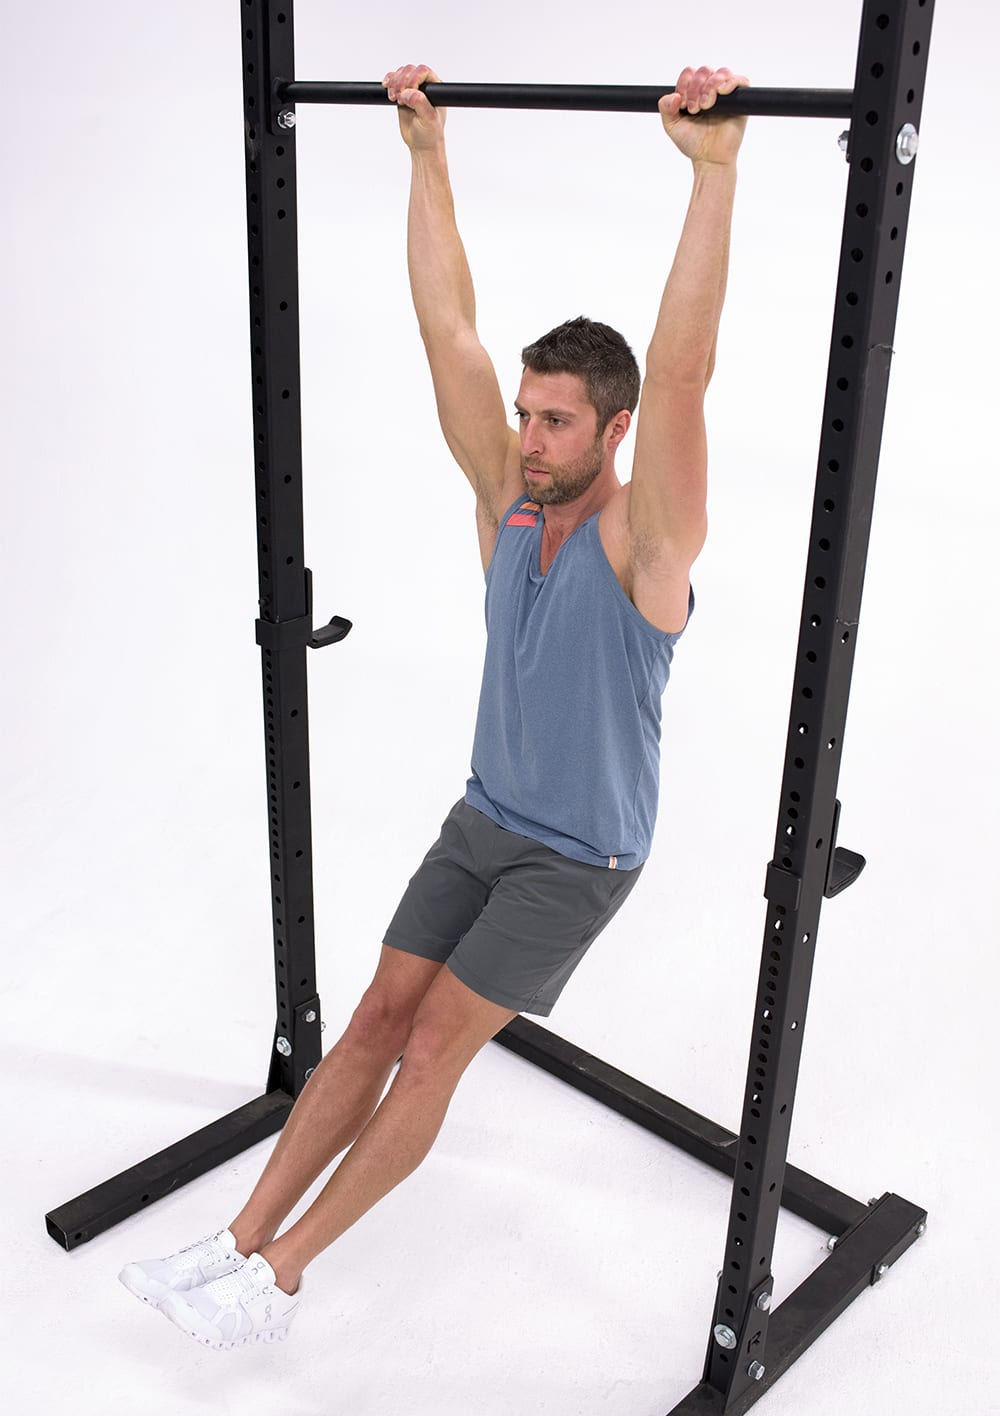 man performing hollow body hold isometric exercise